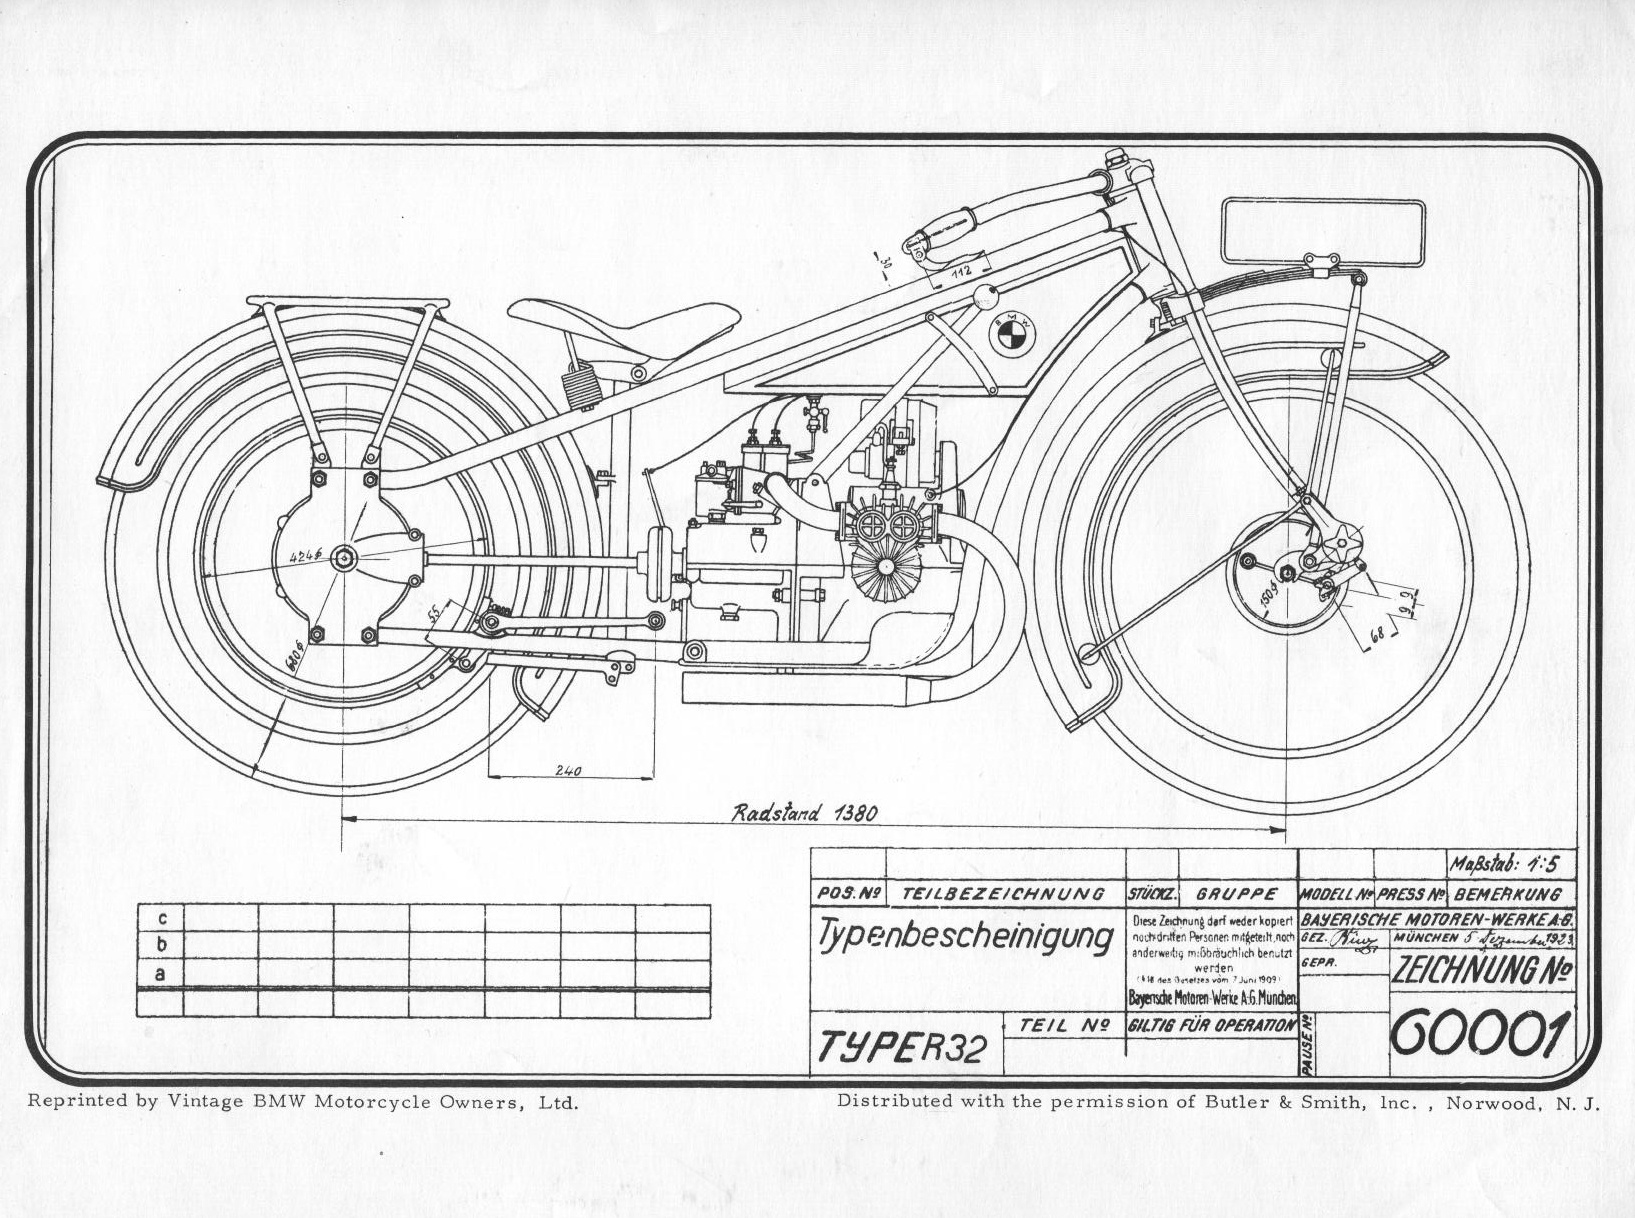 R32 Line Drawing Duane Ausherman Bmw Motorcycles